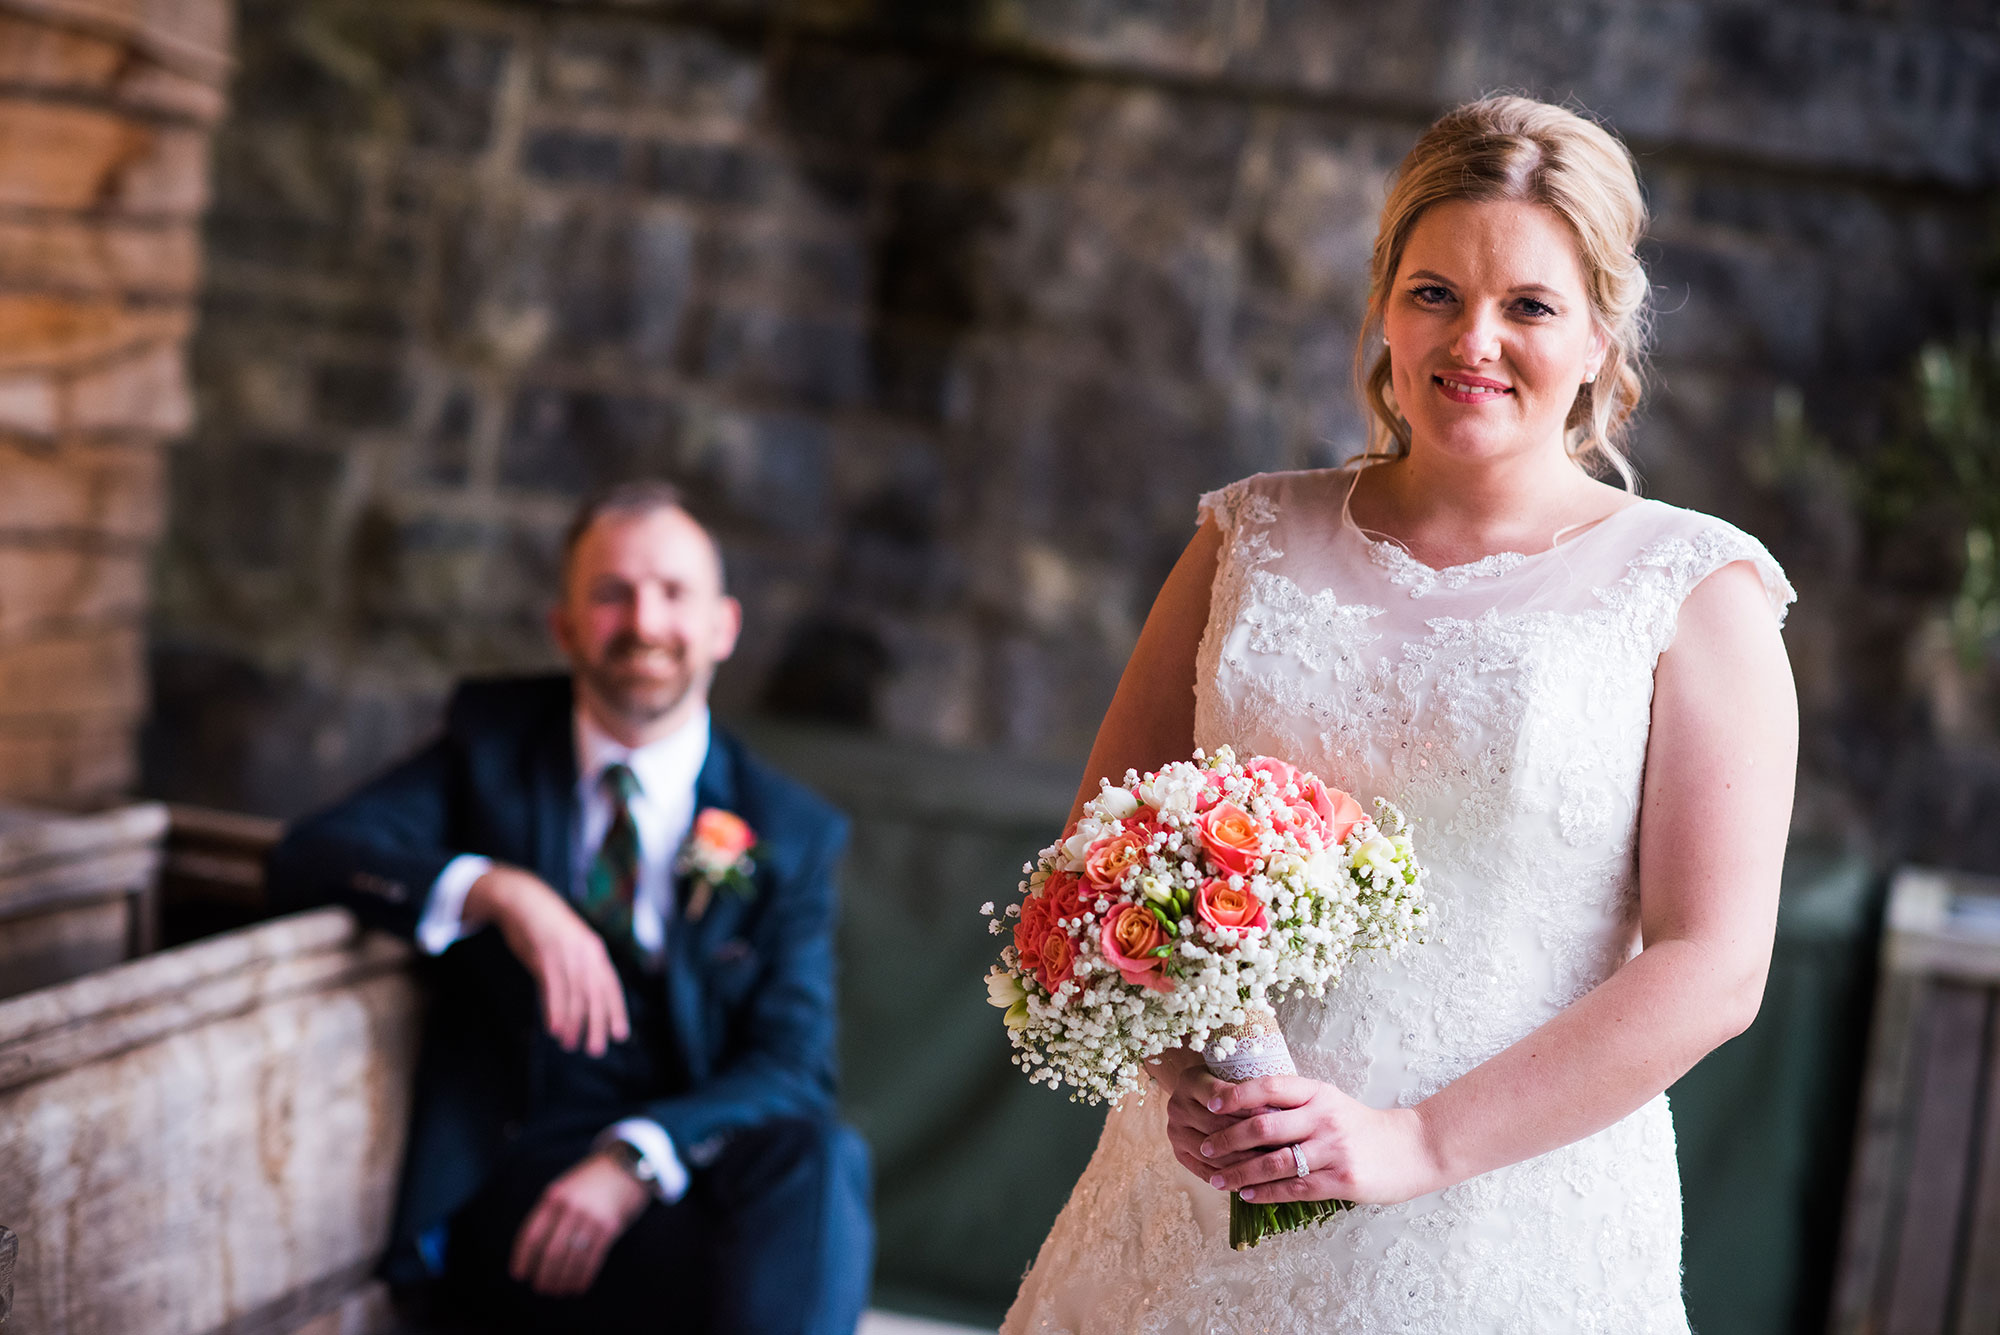 outdoor wedding photography at Tower Hill Barns in North Wales by the Railway Bridge; Jane & Conor